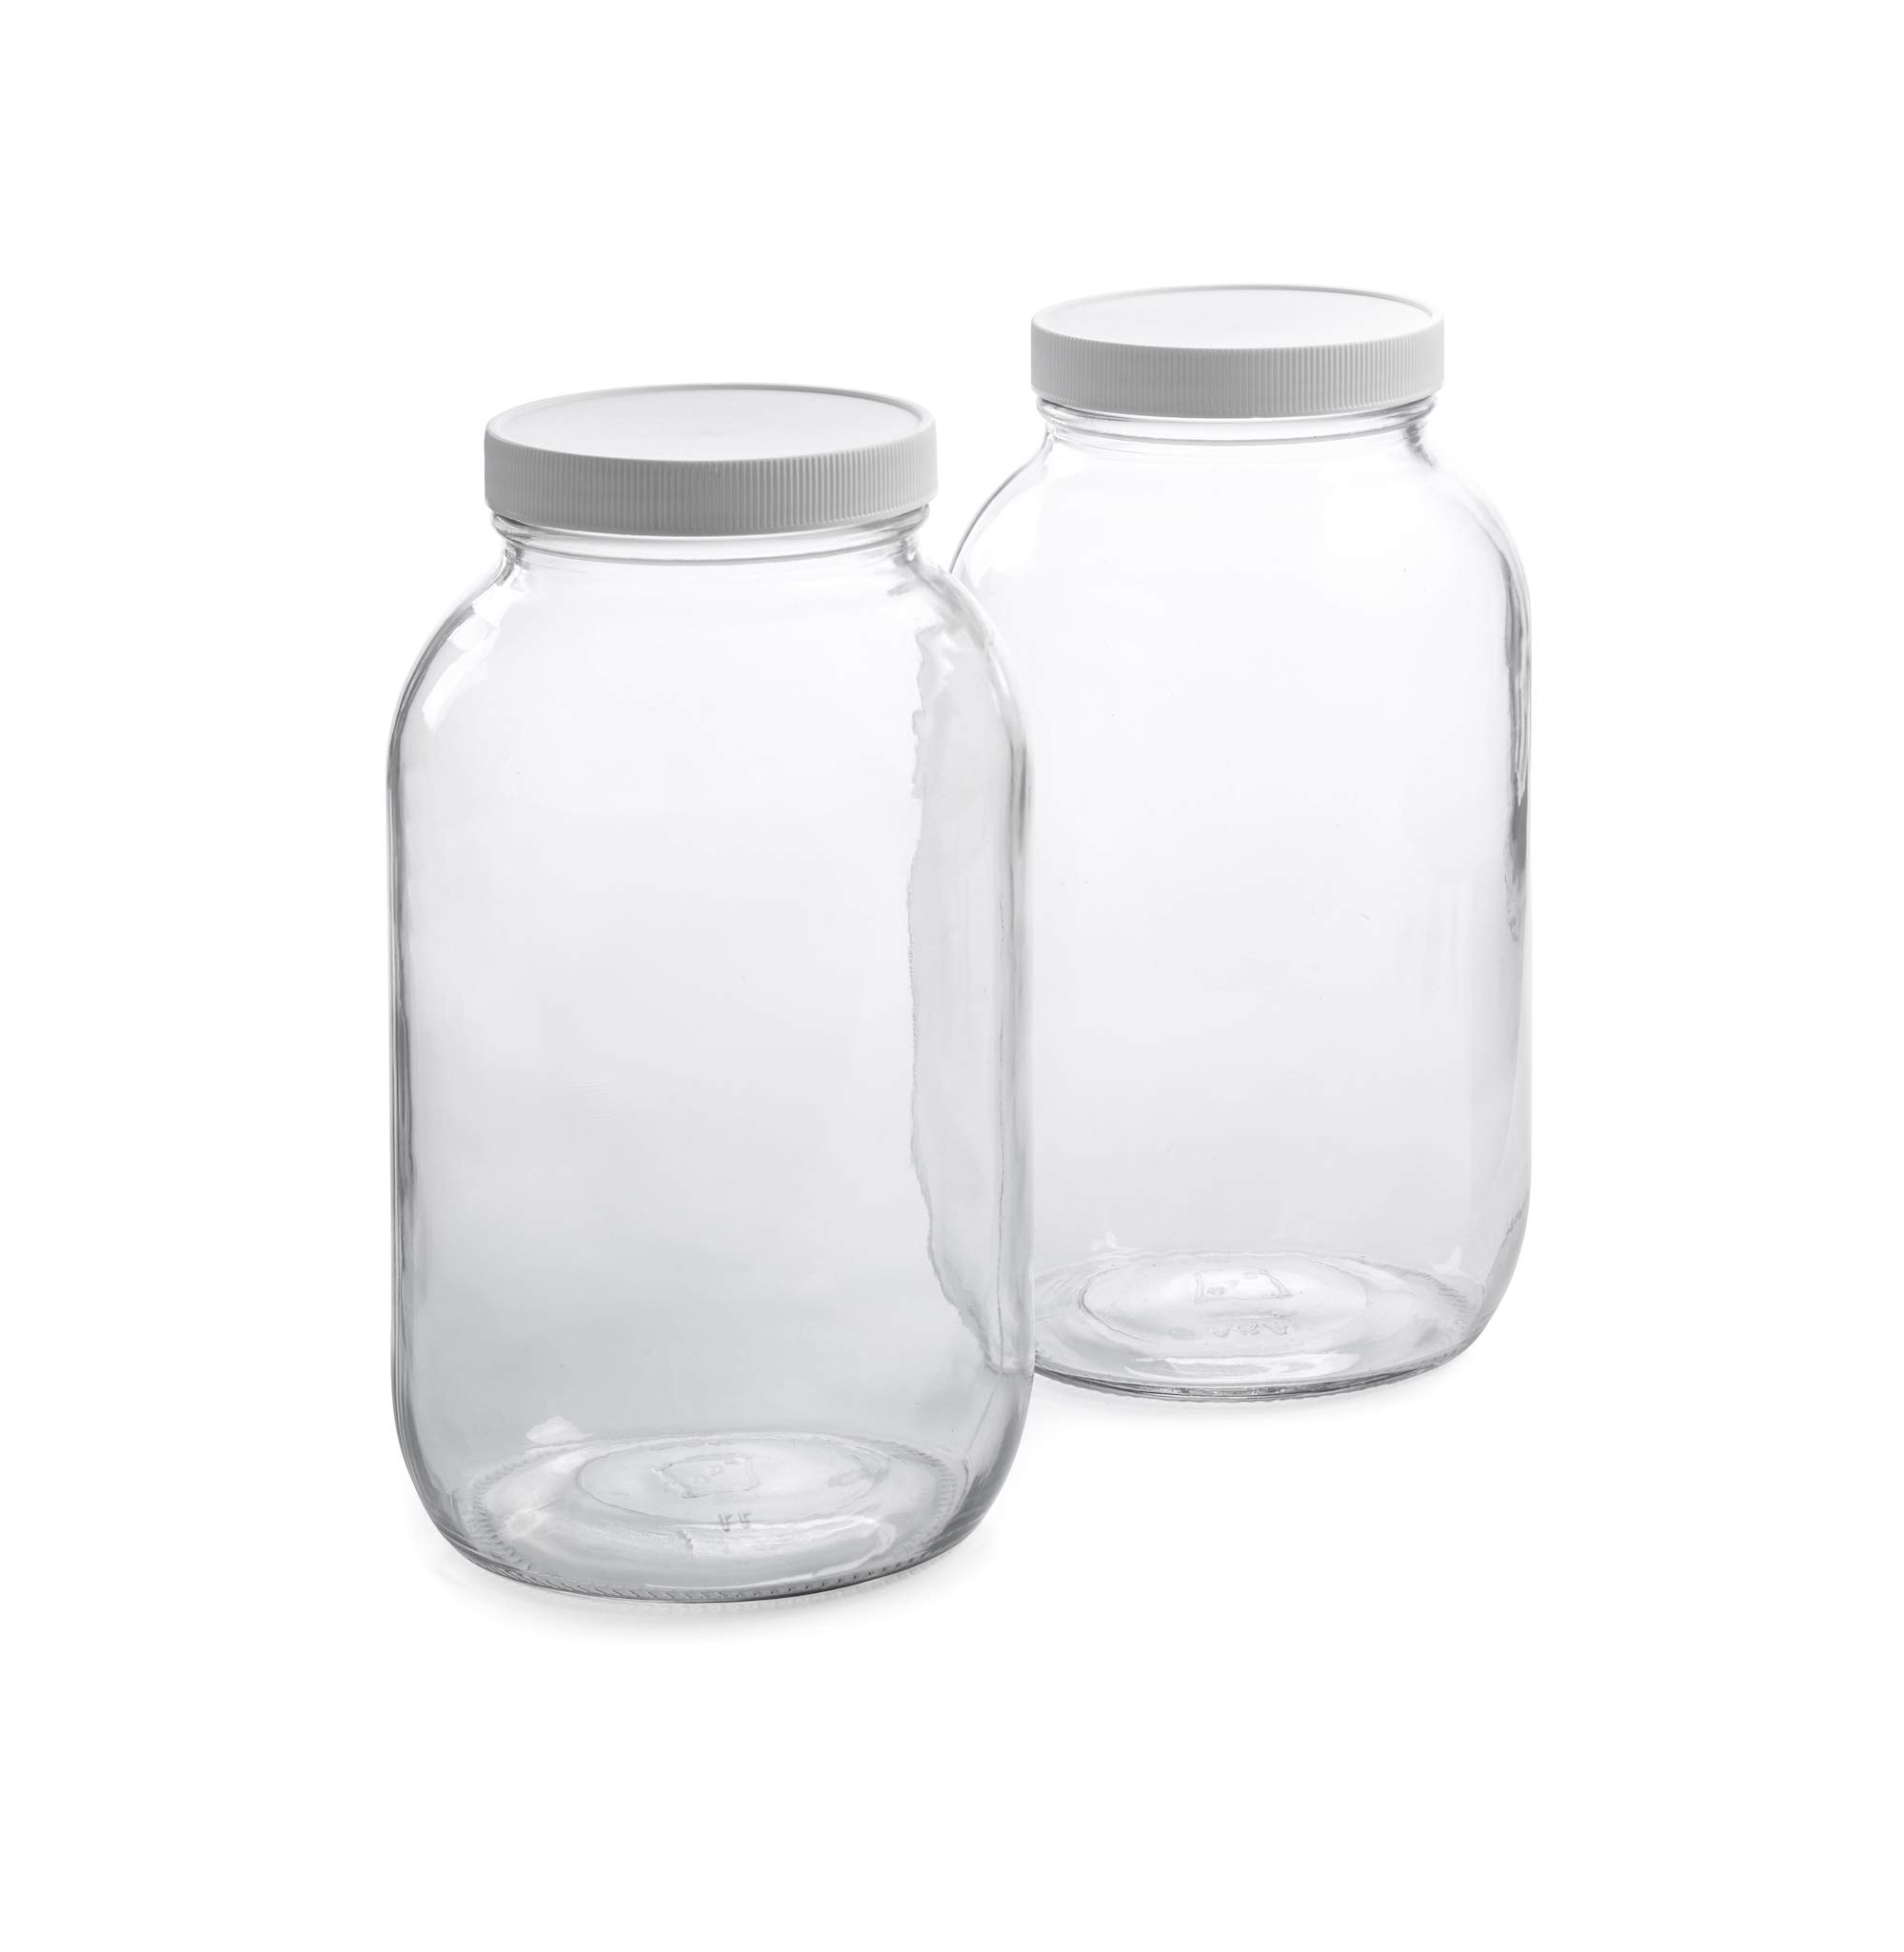 1790 Half Gallon Glass Jars (64oz) 2-Pack - Includes 2 Airtight Lids, Muslin Cloths, Rubber Bands - BPA Free, Dishwasher & Freezer Safe - Perfect for Kombucha, Kefir, Canning, Sun Tea, Fermentation